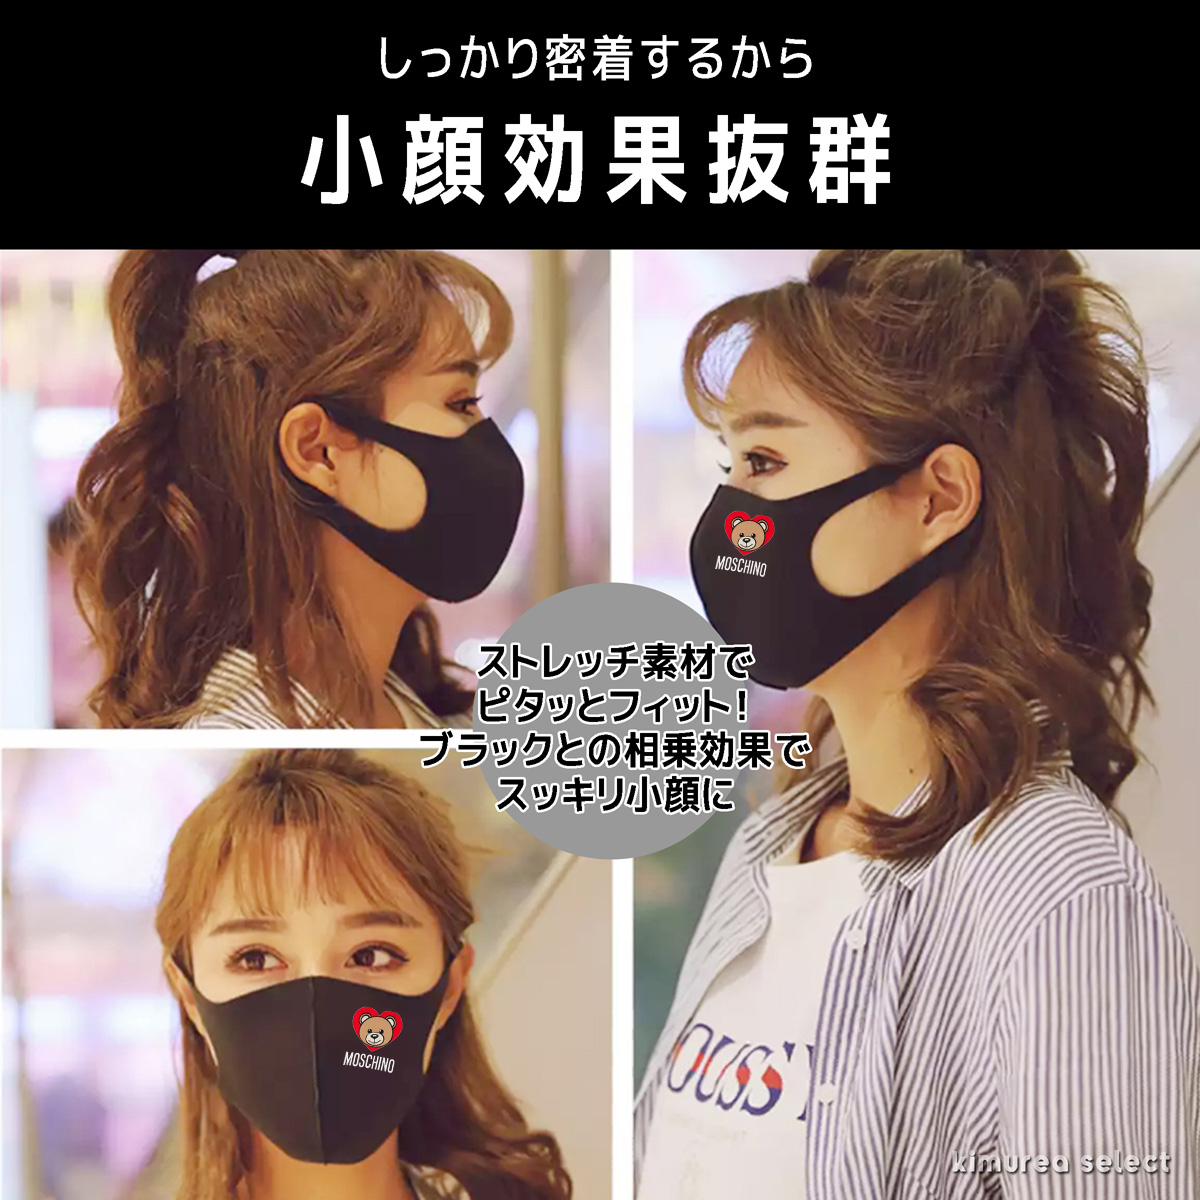 moschino washable cotton fabric cloth face mask